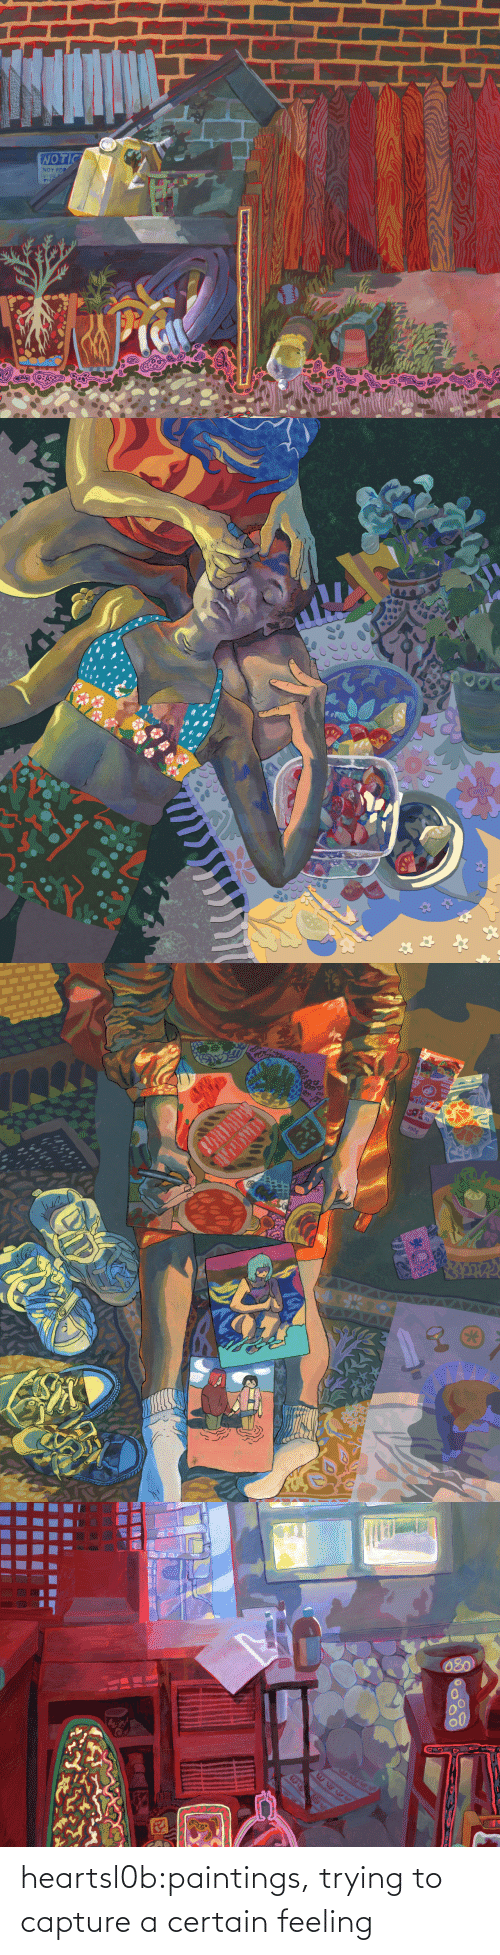 Paintings: heartsl0b:paintings, trying to capture a certain feeling